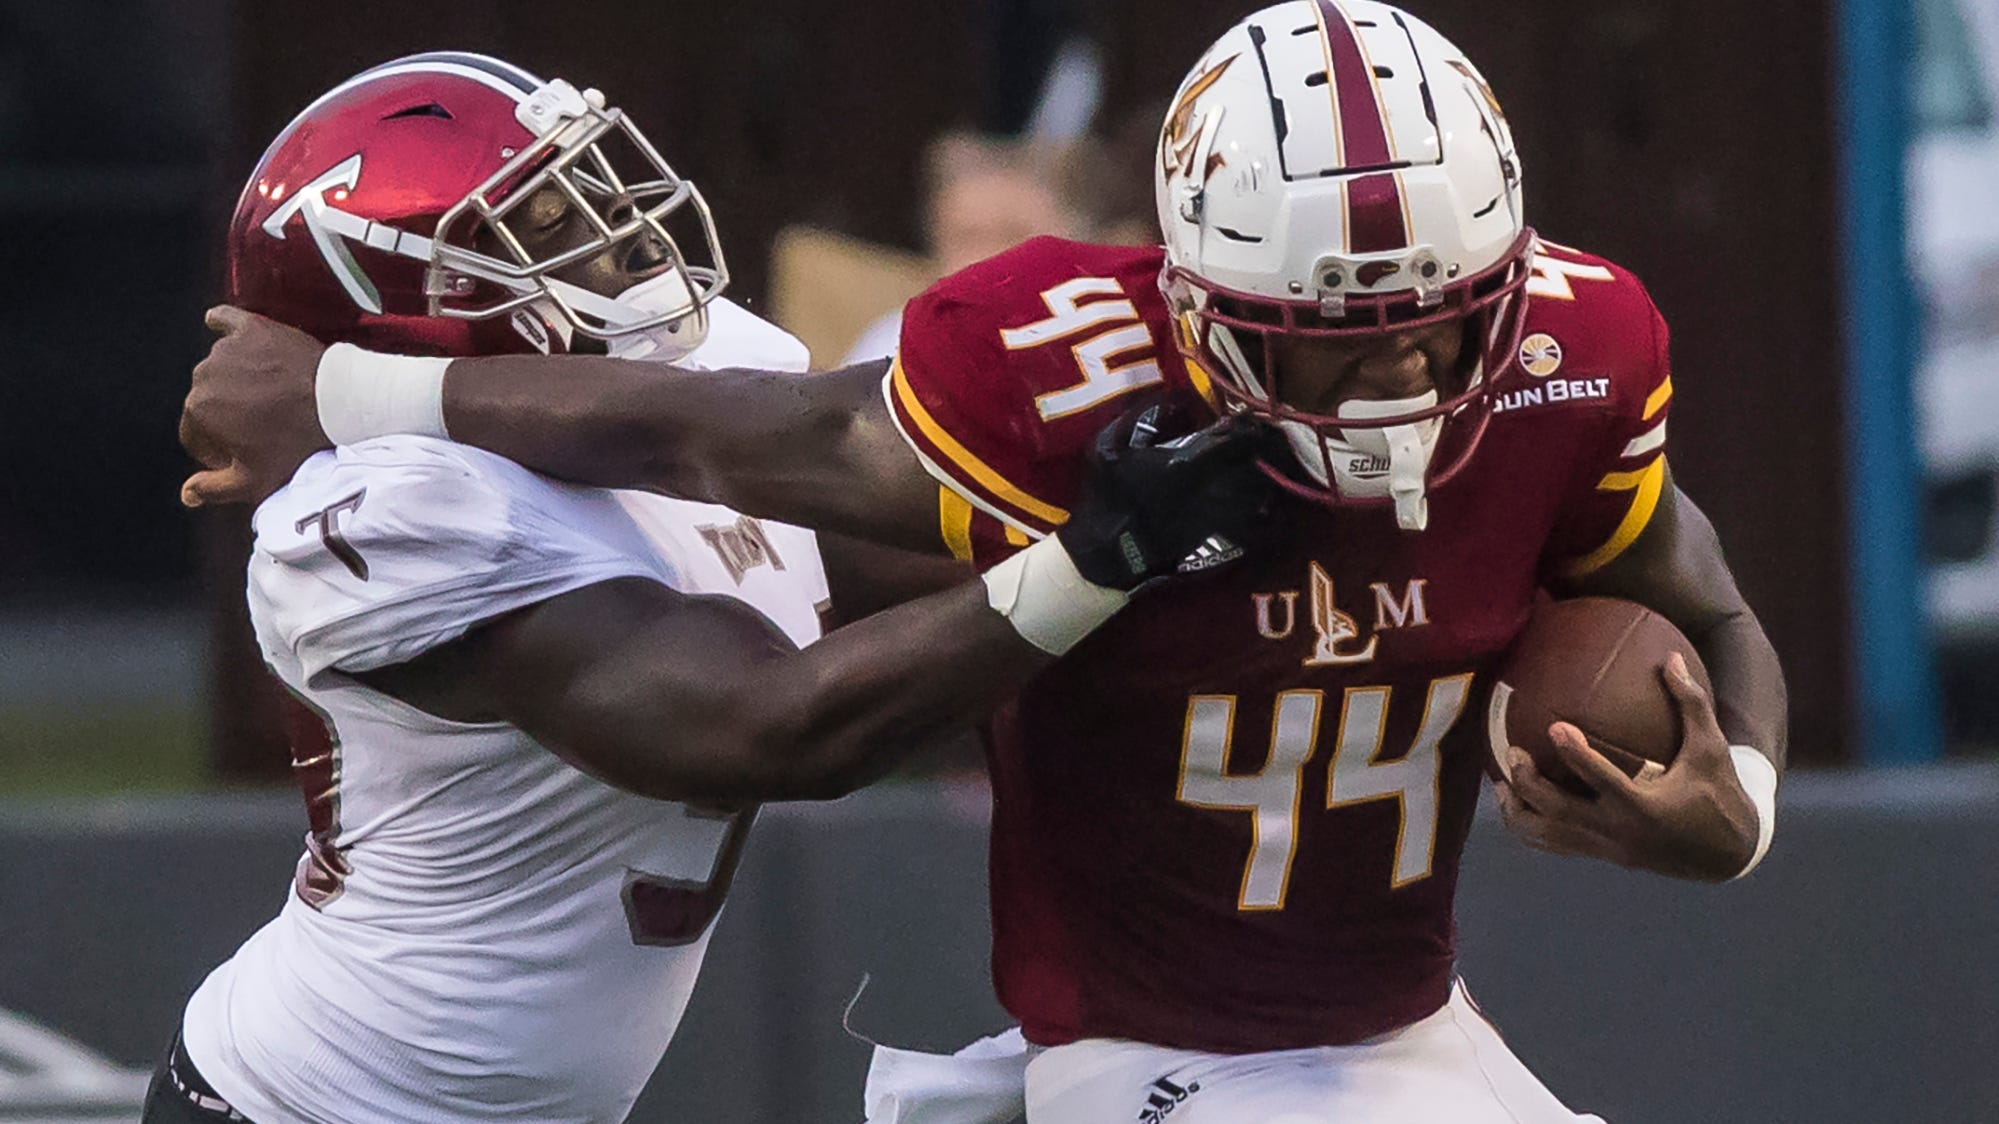 Troy traveled to ULM to take on the Warhawks at Malone Stadium in Monroe, La. on Sept. 22. ULM lost in the waning seconds of the game 35-28.